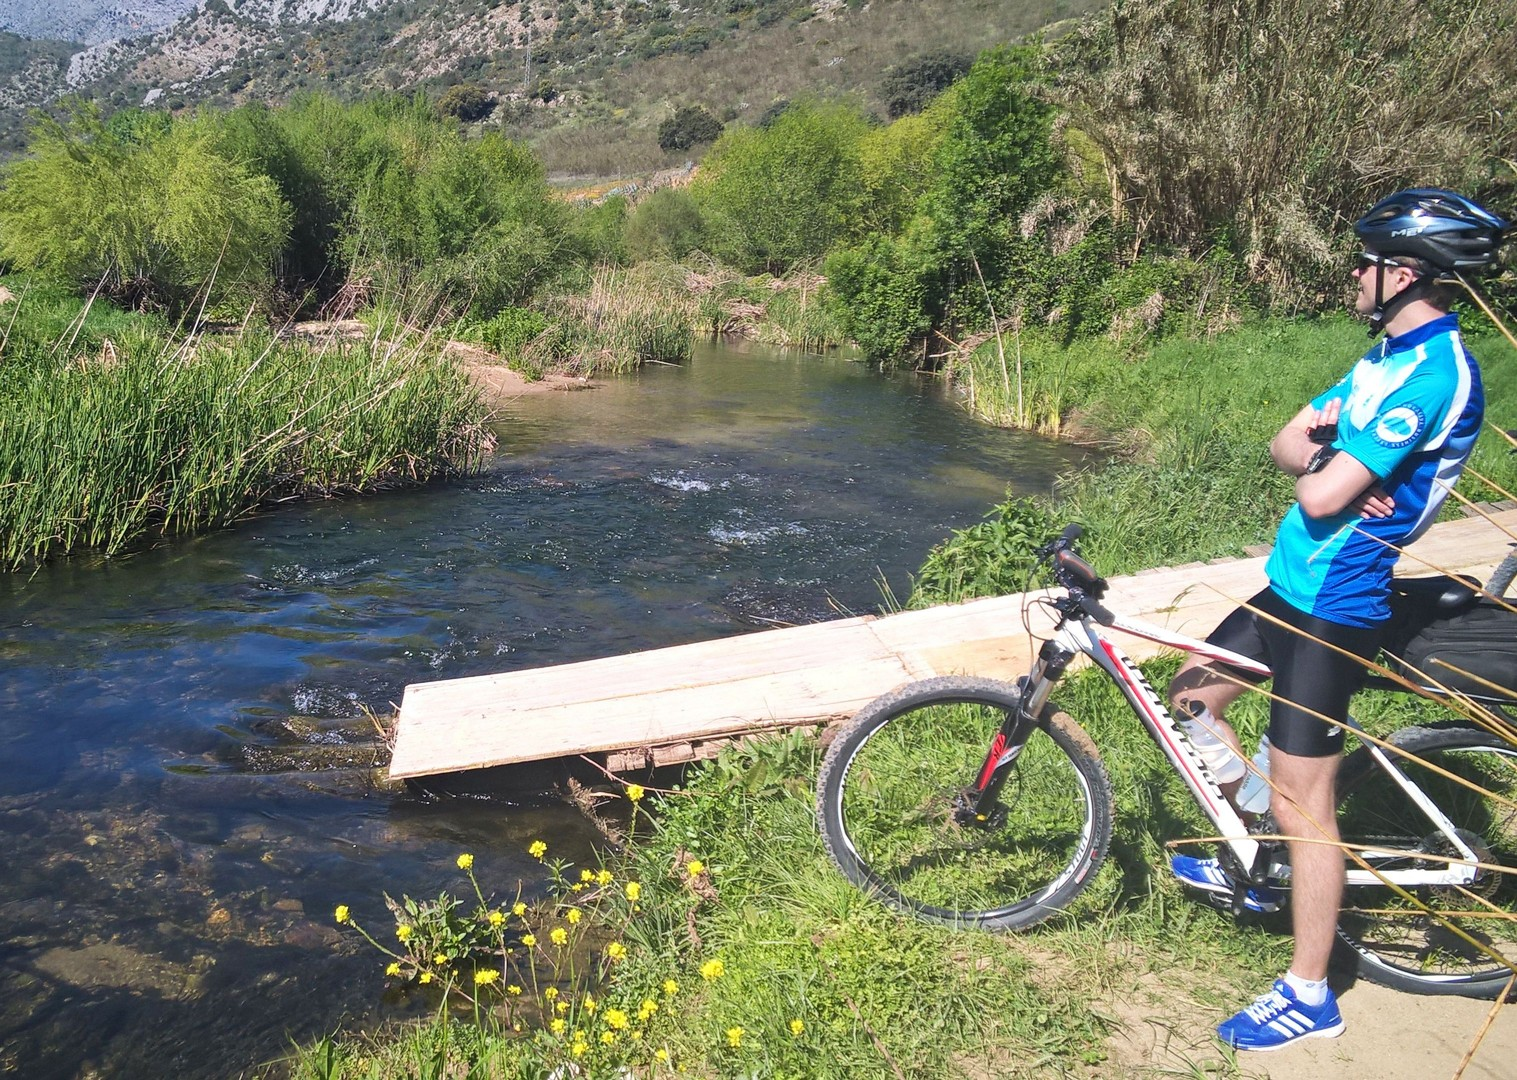 self-guided-holiday-in-spain-sierras-to-the-sea.jpg - Southern Spain - Sierras to the Sea - Self-Guided Leisure Cycling Holiday - Leisure Cycling